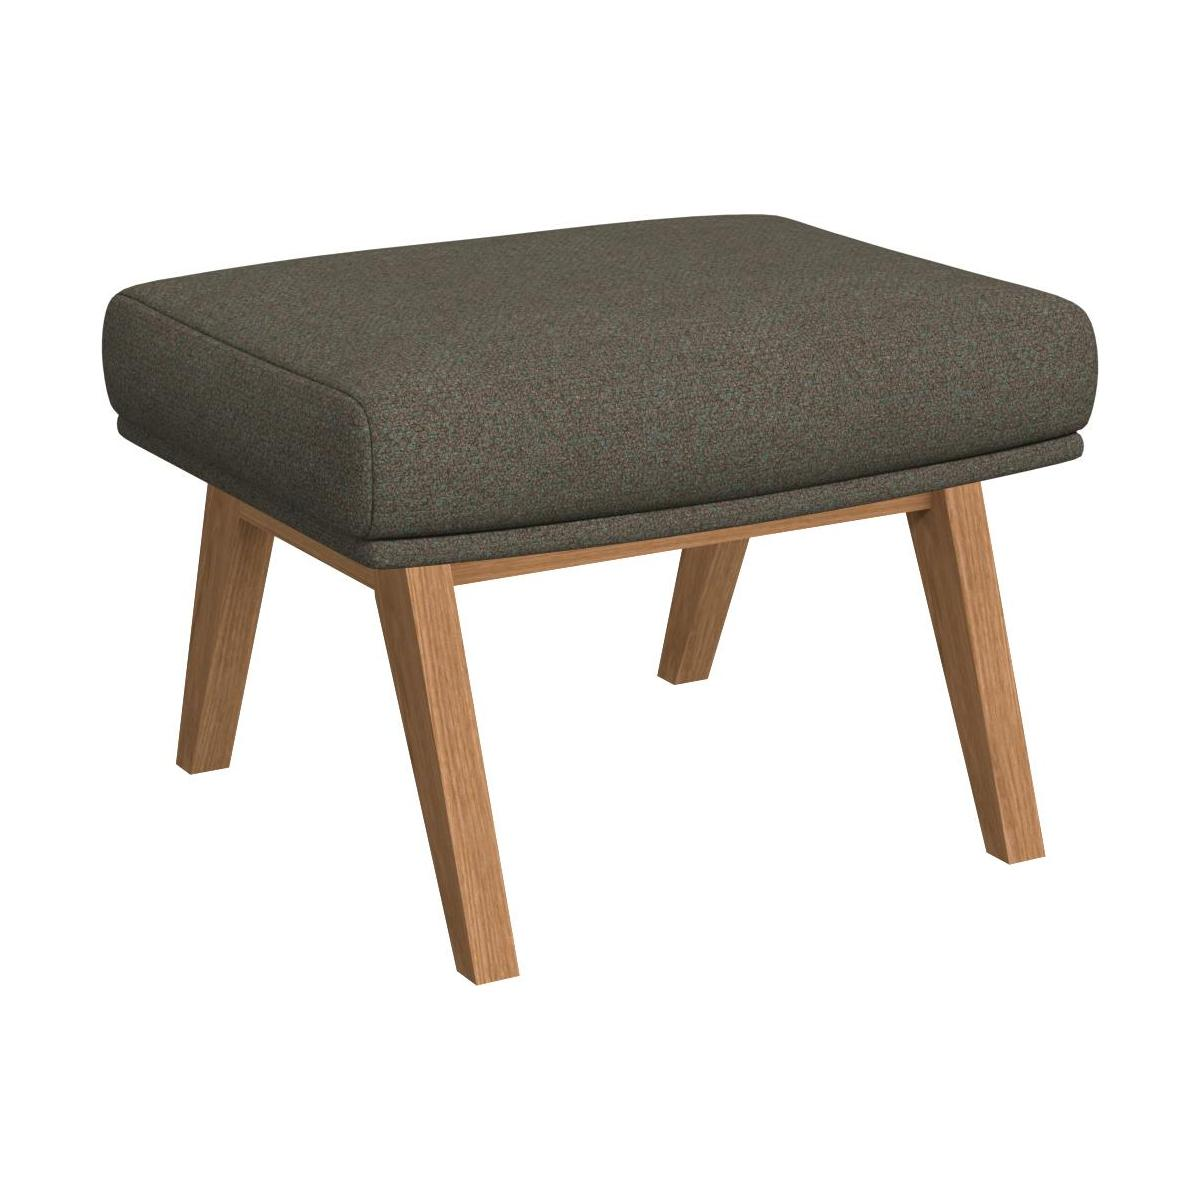 Footstool in Lecce fabric, slade grey with oak legs n°1